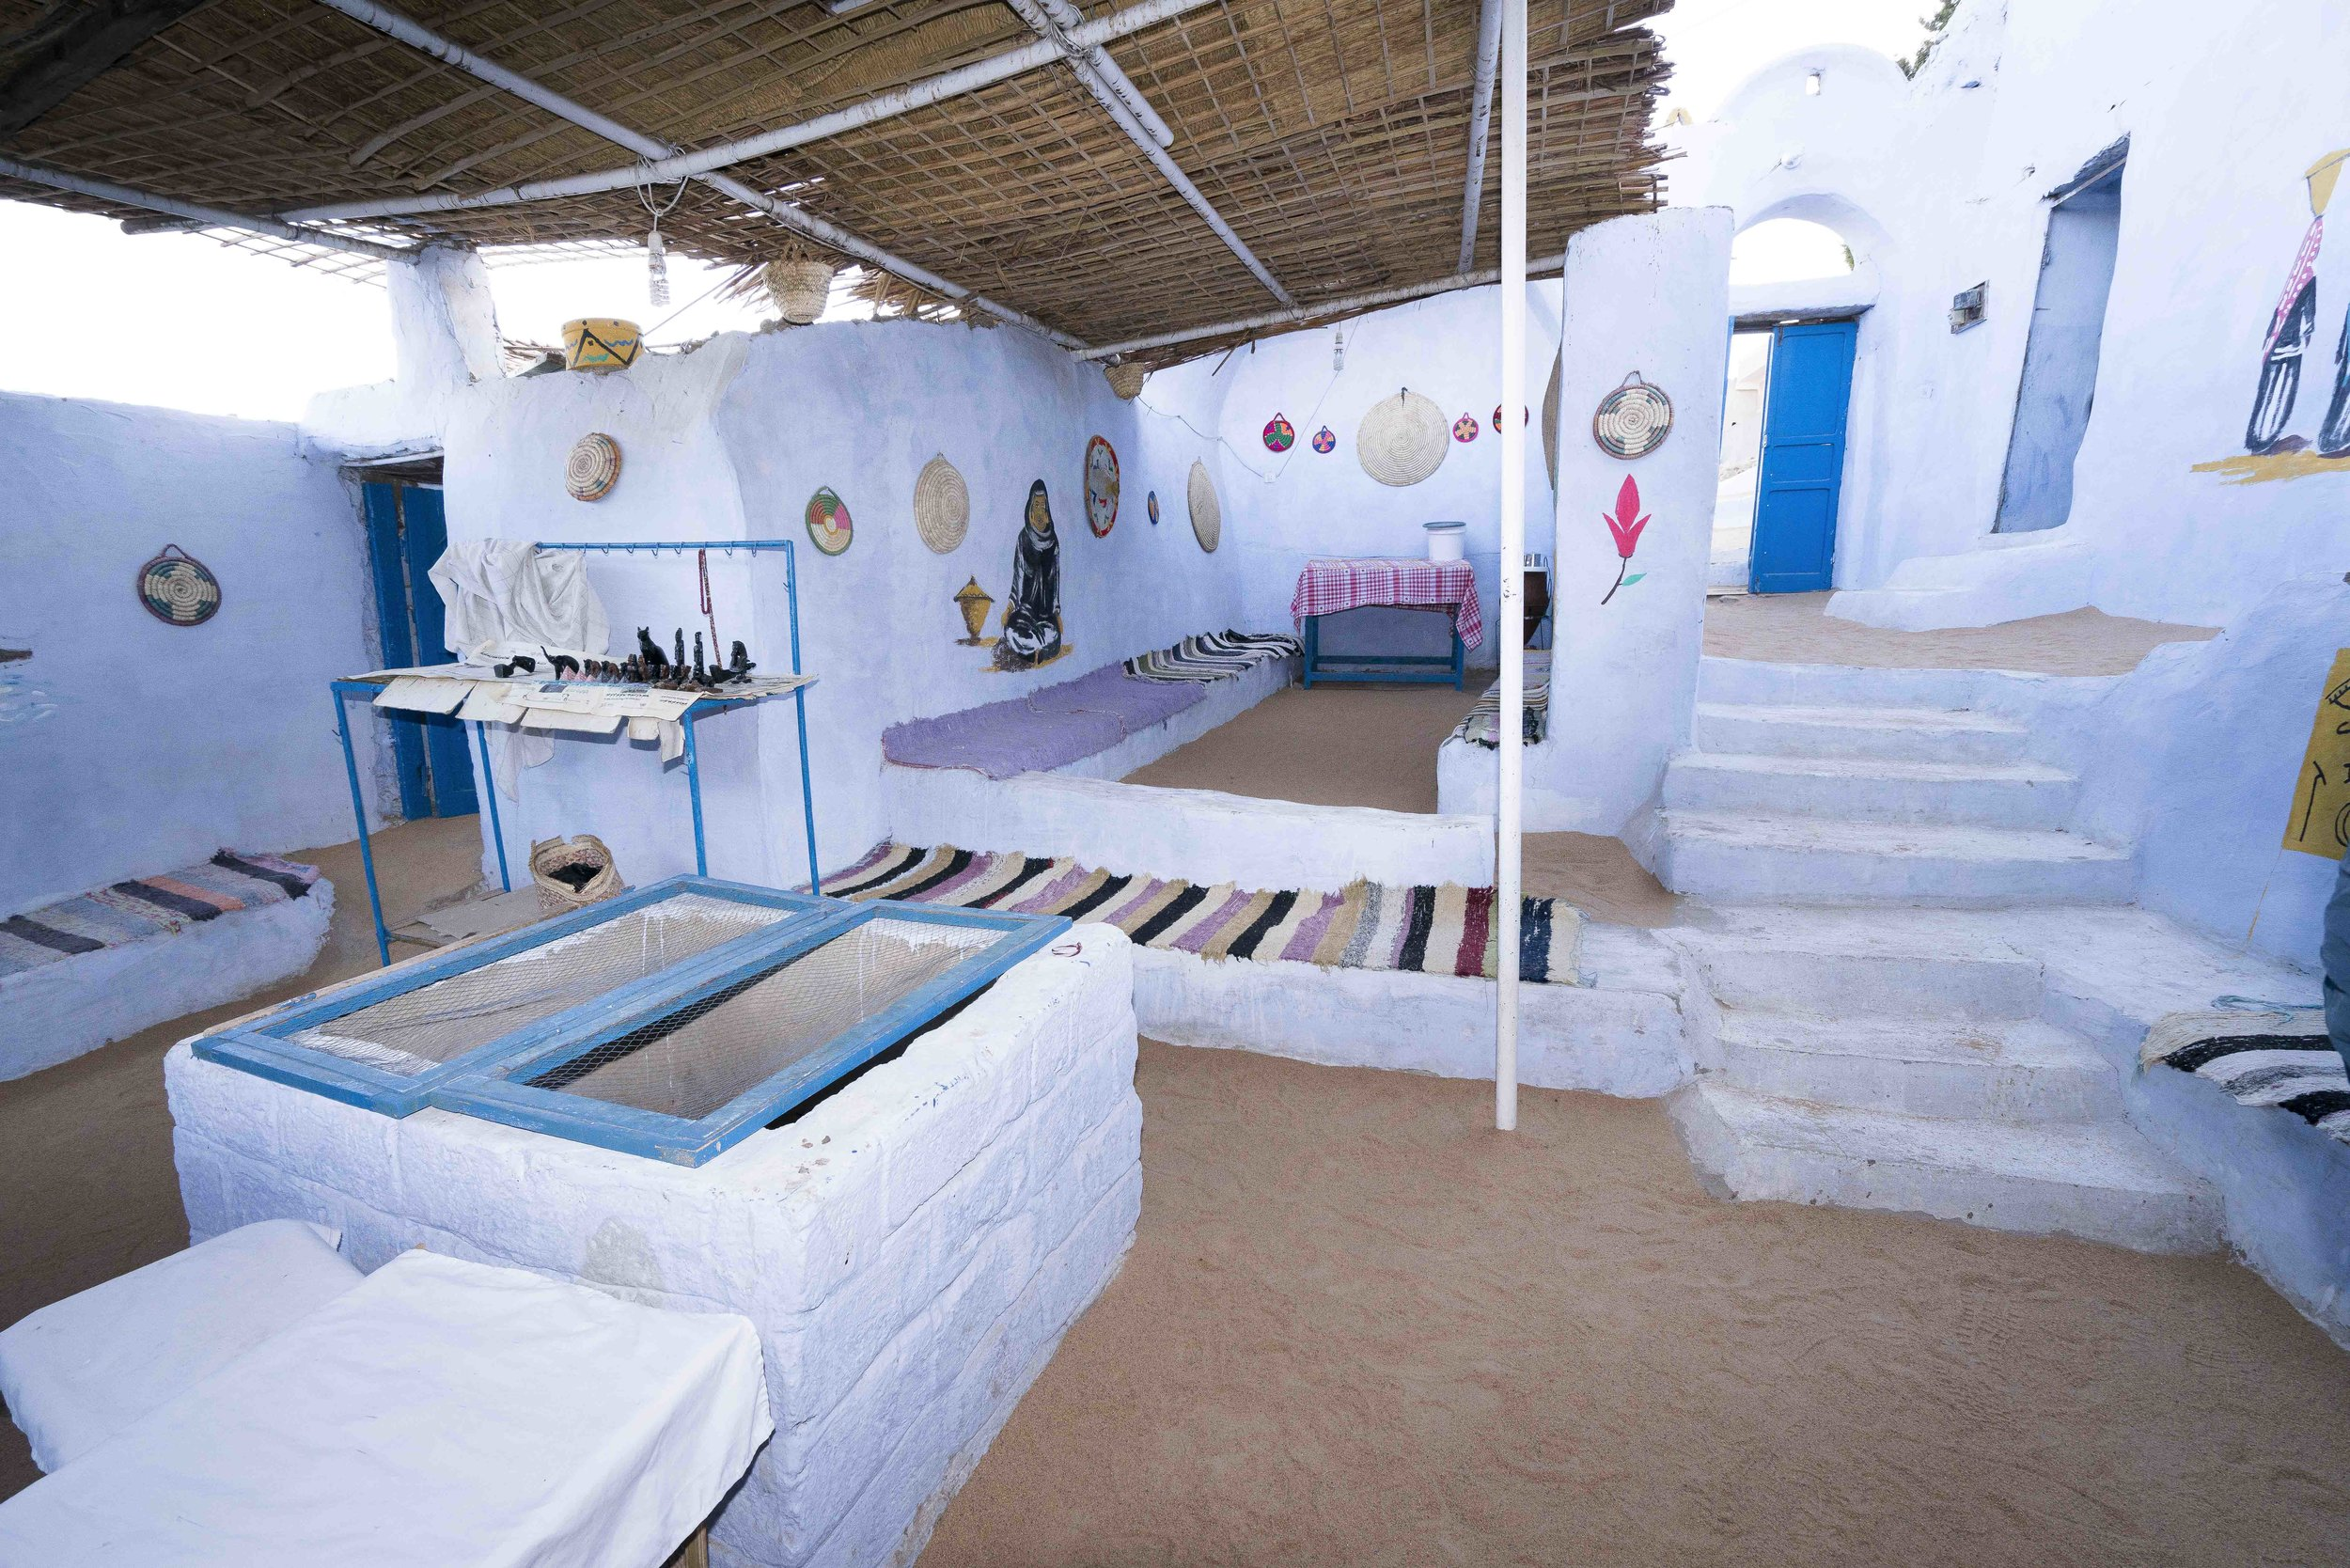 Nubian living room, note the sand floors and the structure in the foreground with the screens on the top